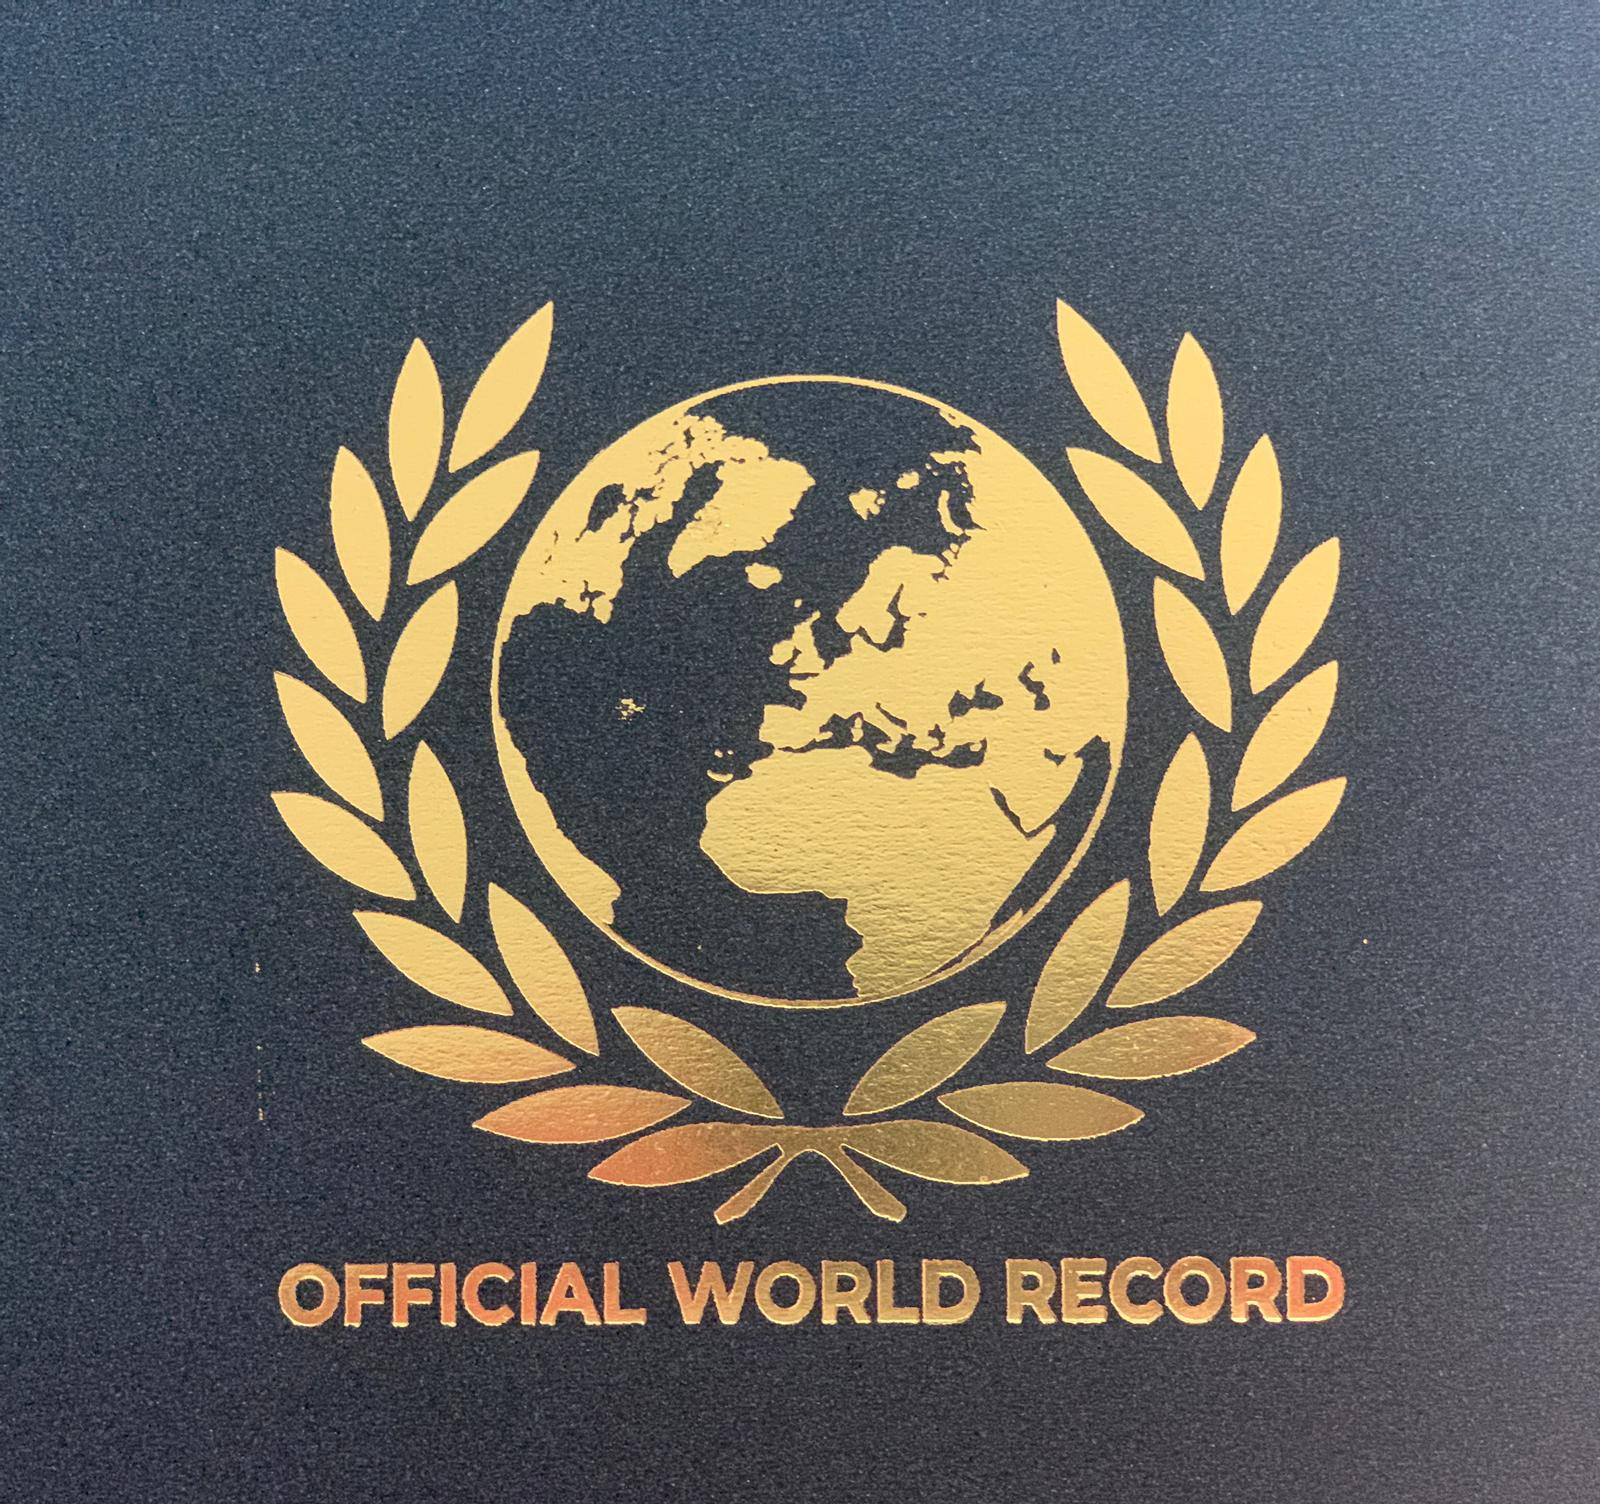 The Official World Record turns 10 years old and is clearly positioned as the record of the future, already being the most prestigious and valued among the aspirants to obtain that title worldwide.